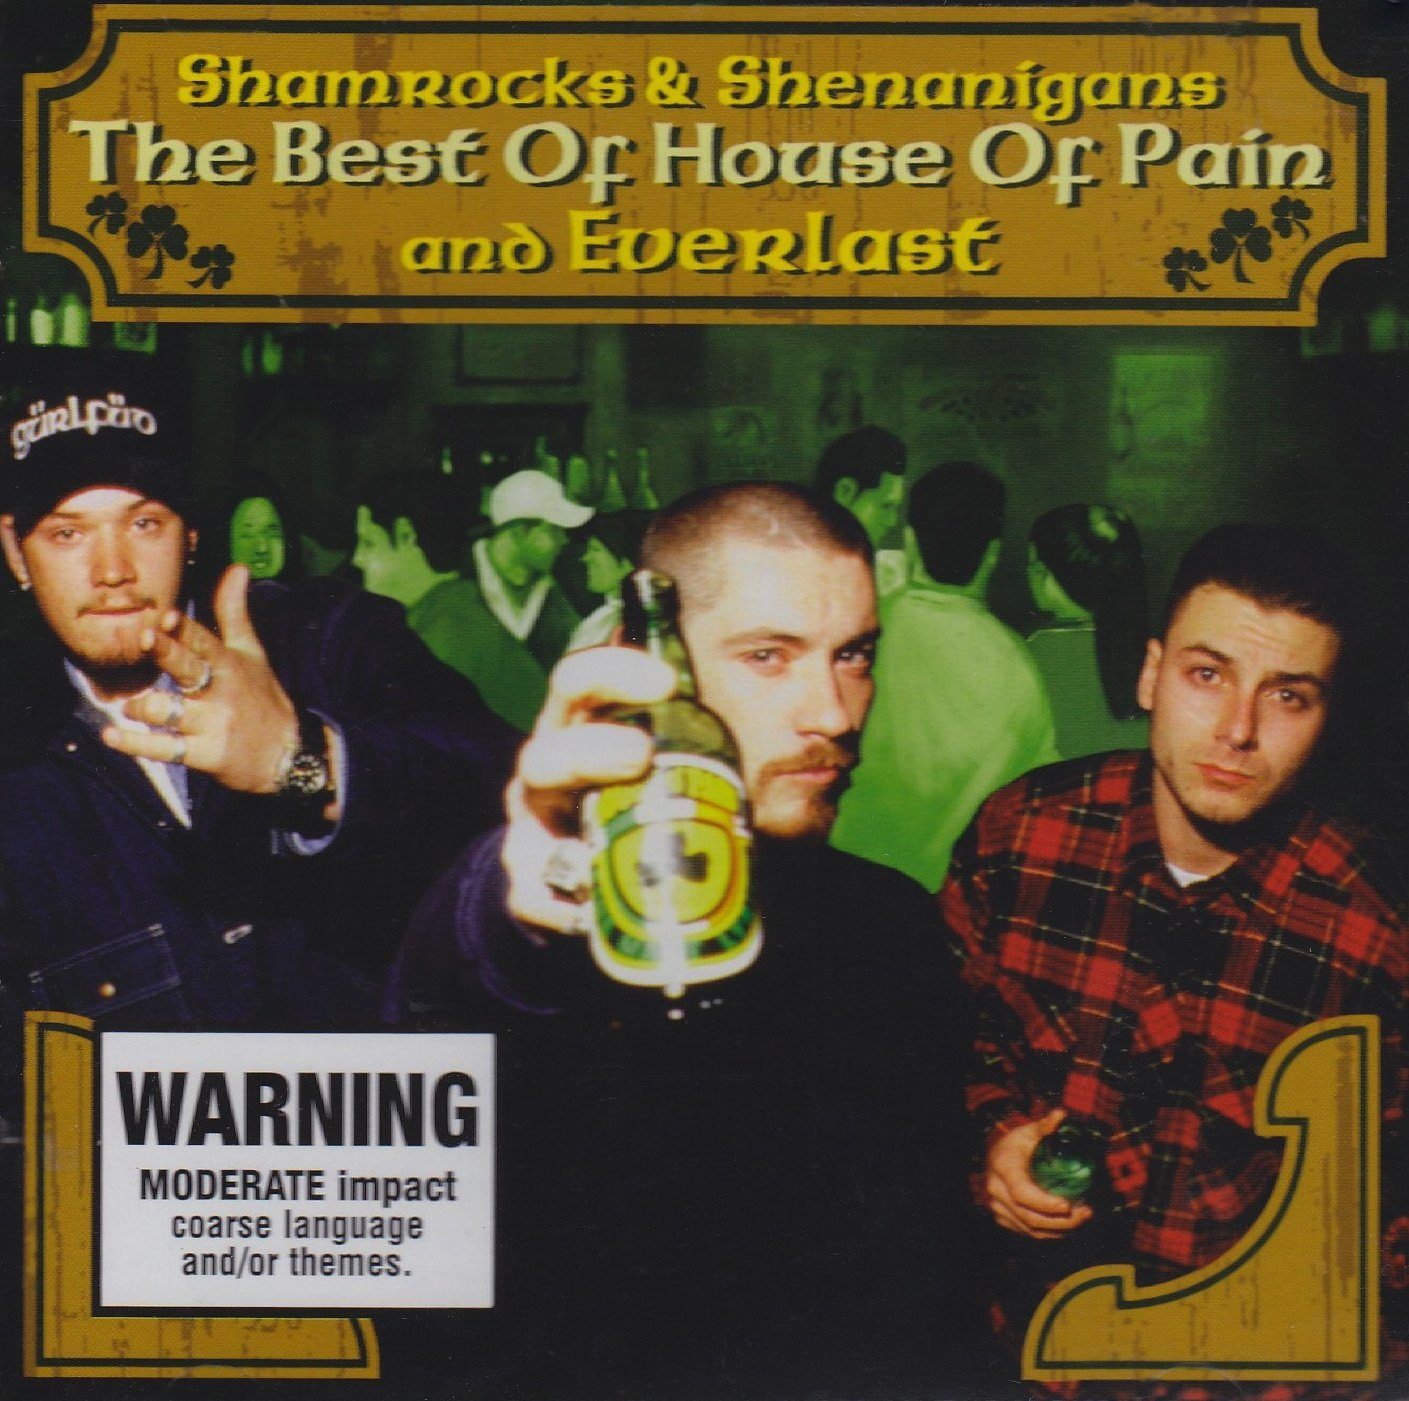 Best Of House Of Pain And Everlast - Shamrock B0002TL13E